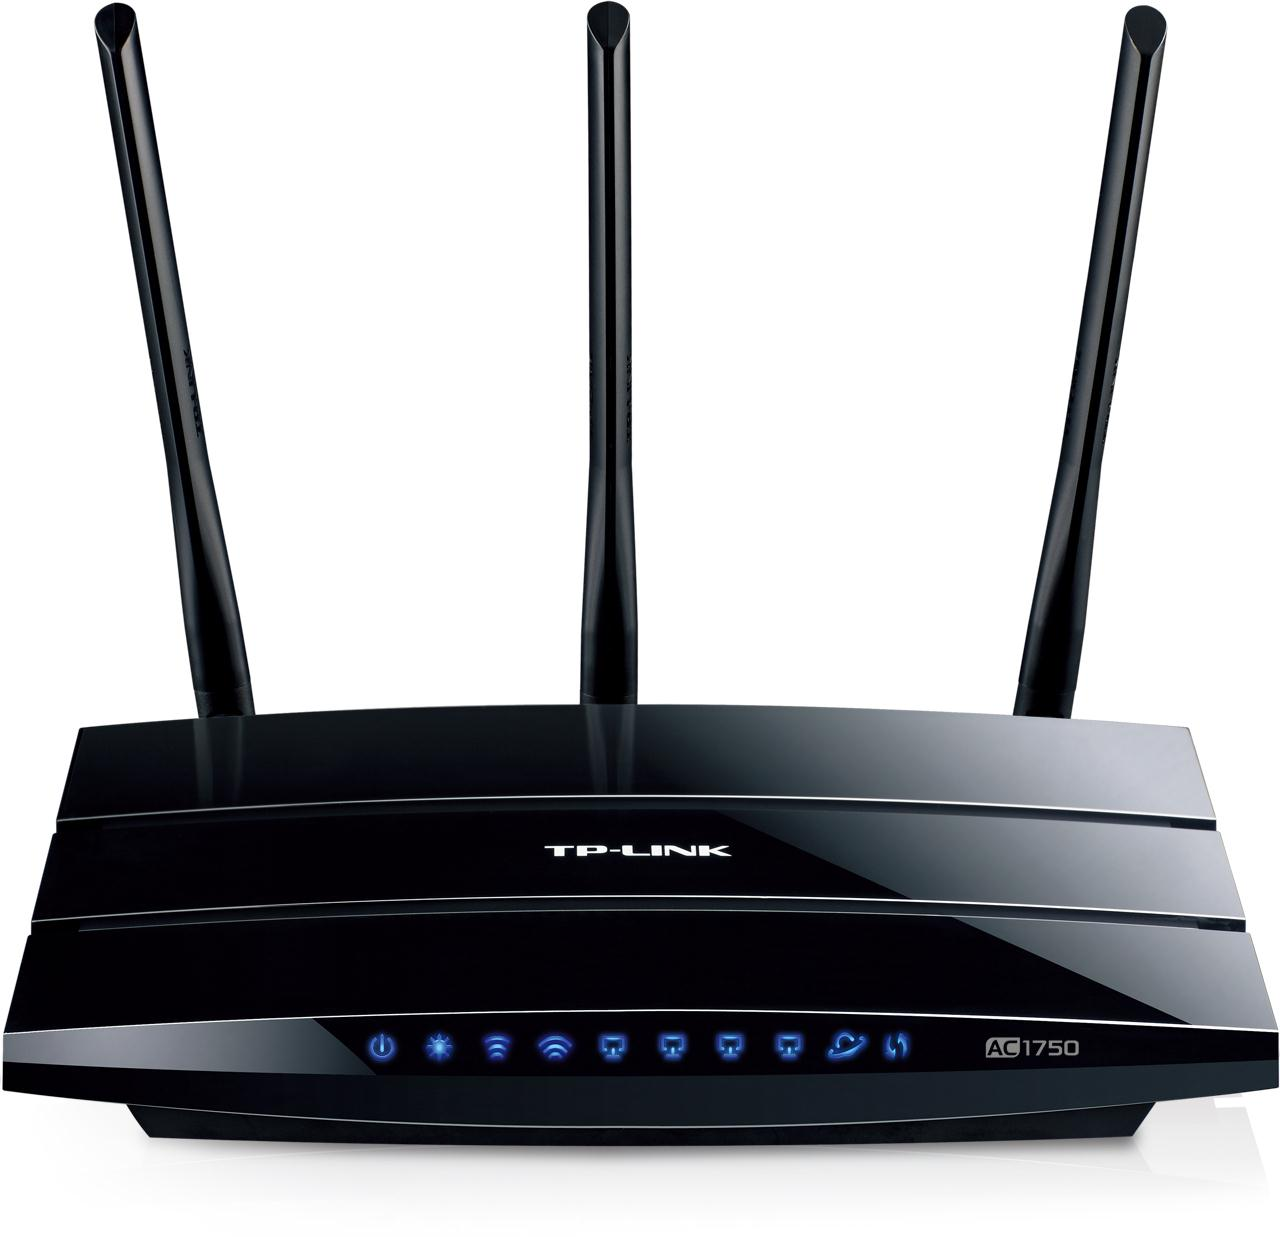 TP Link AC1750 Wireless D/B Router